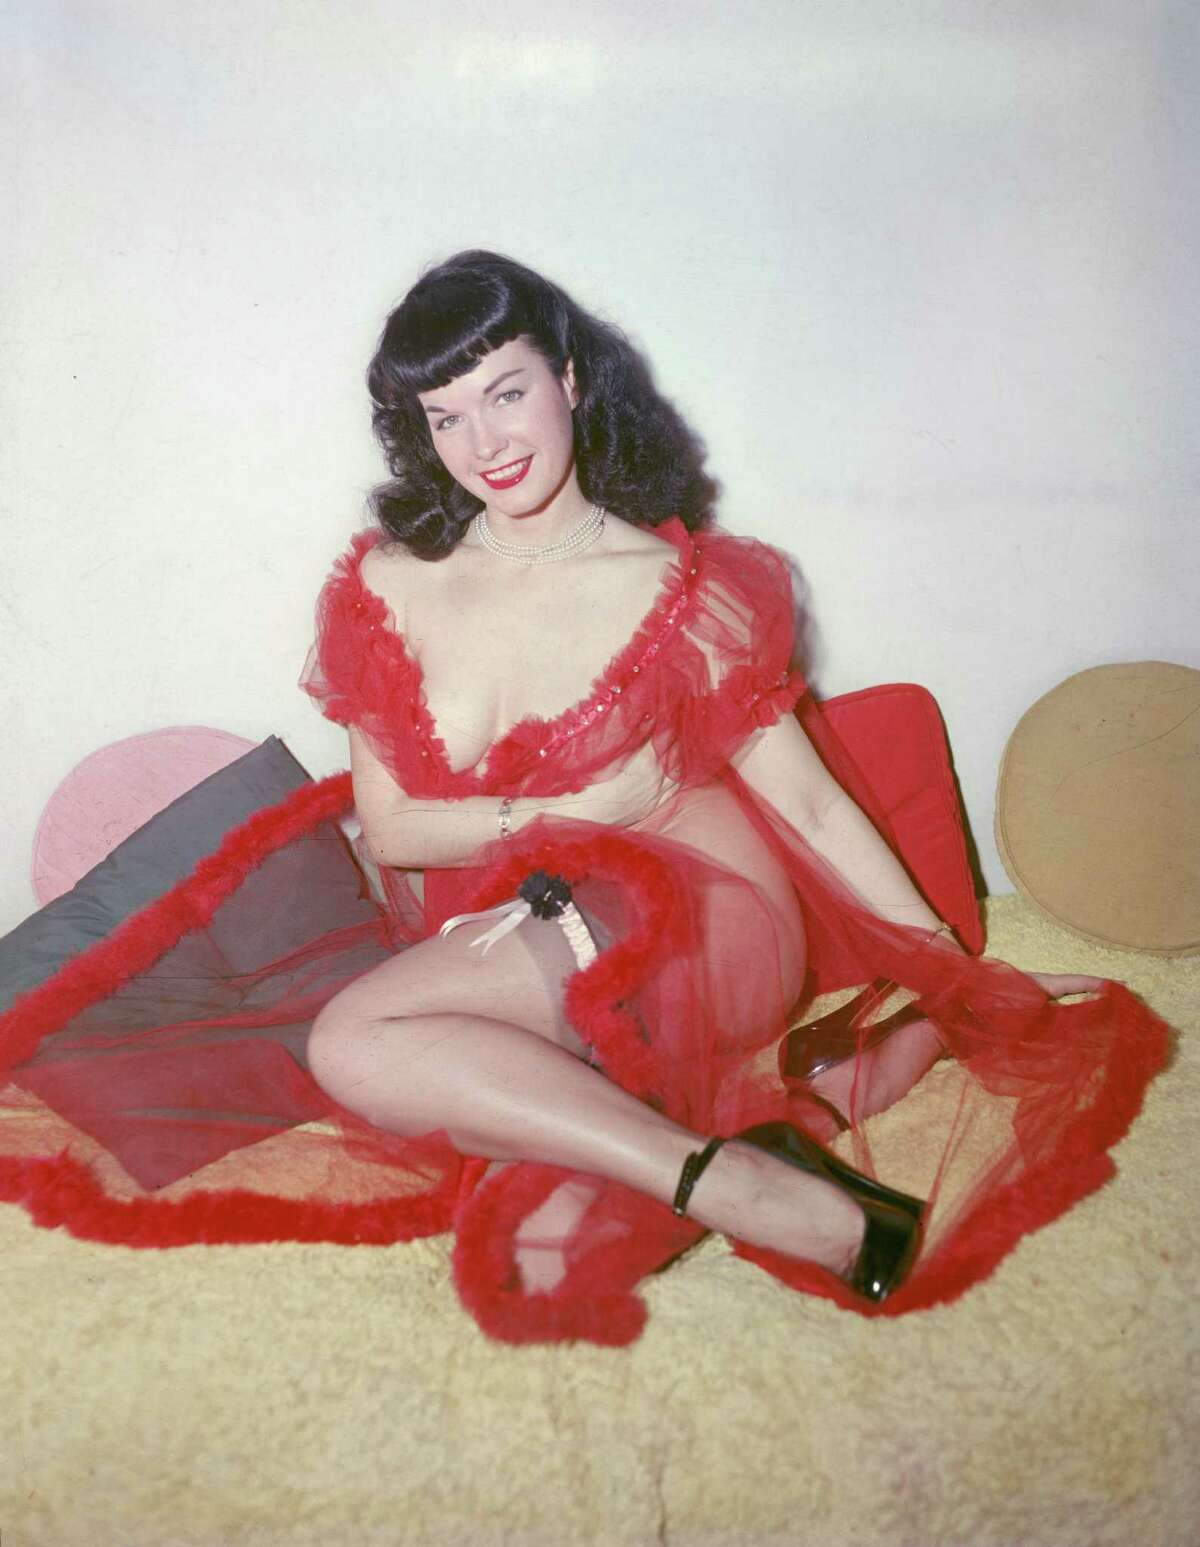 American glamour model and pin-up girl Bettie Page poses in a red negligee and stockings, circa 1955.